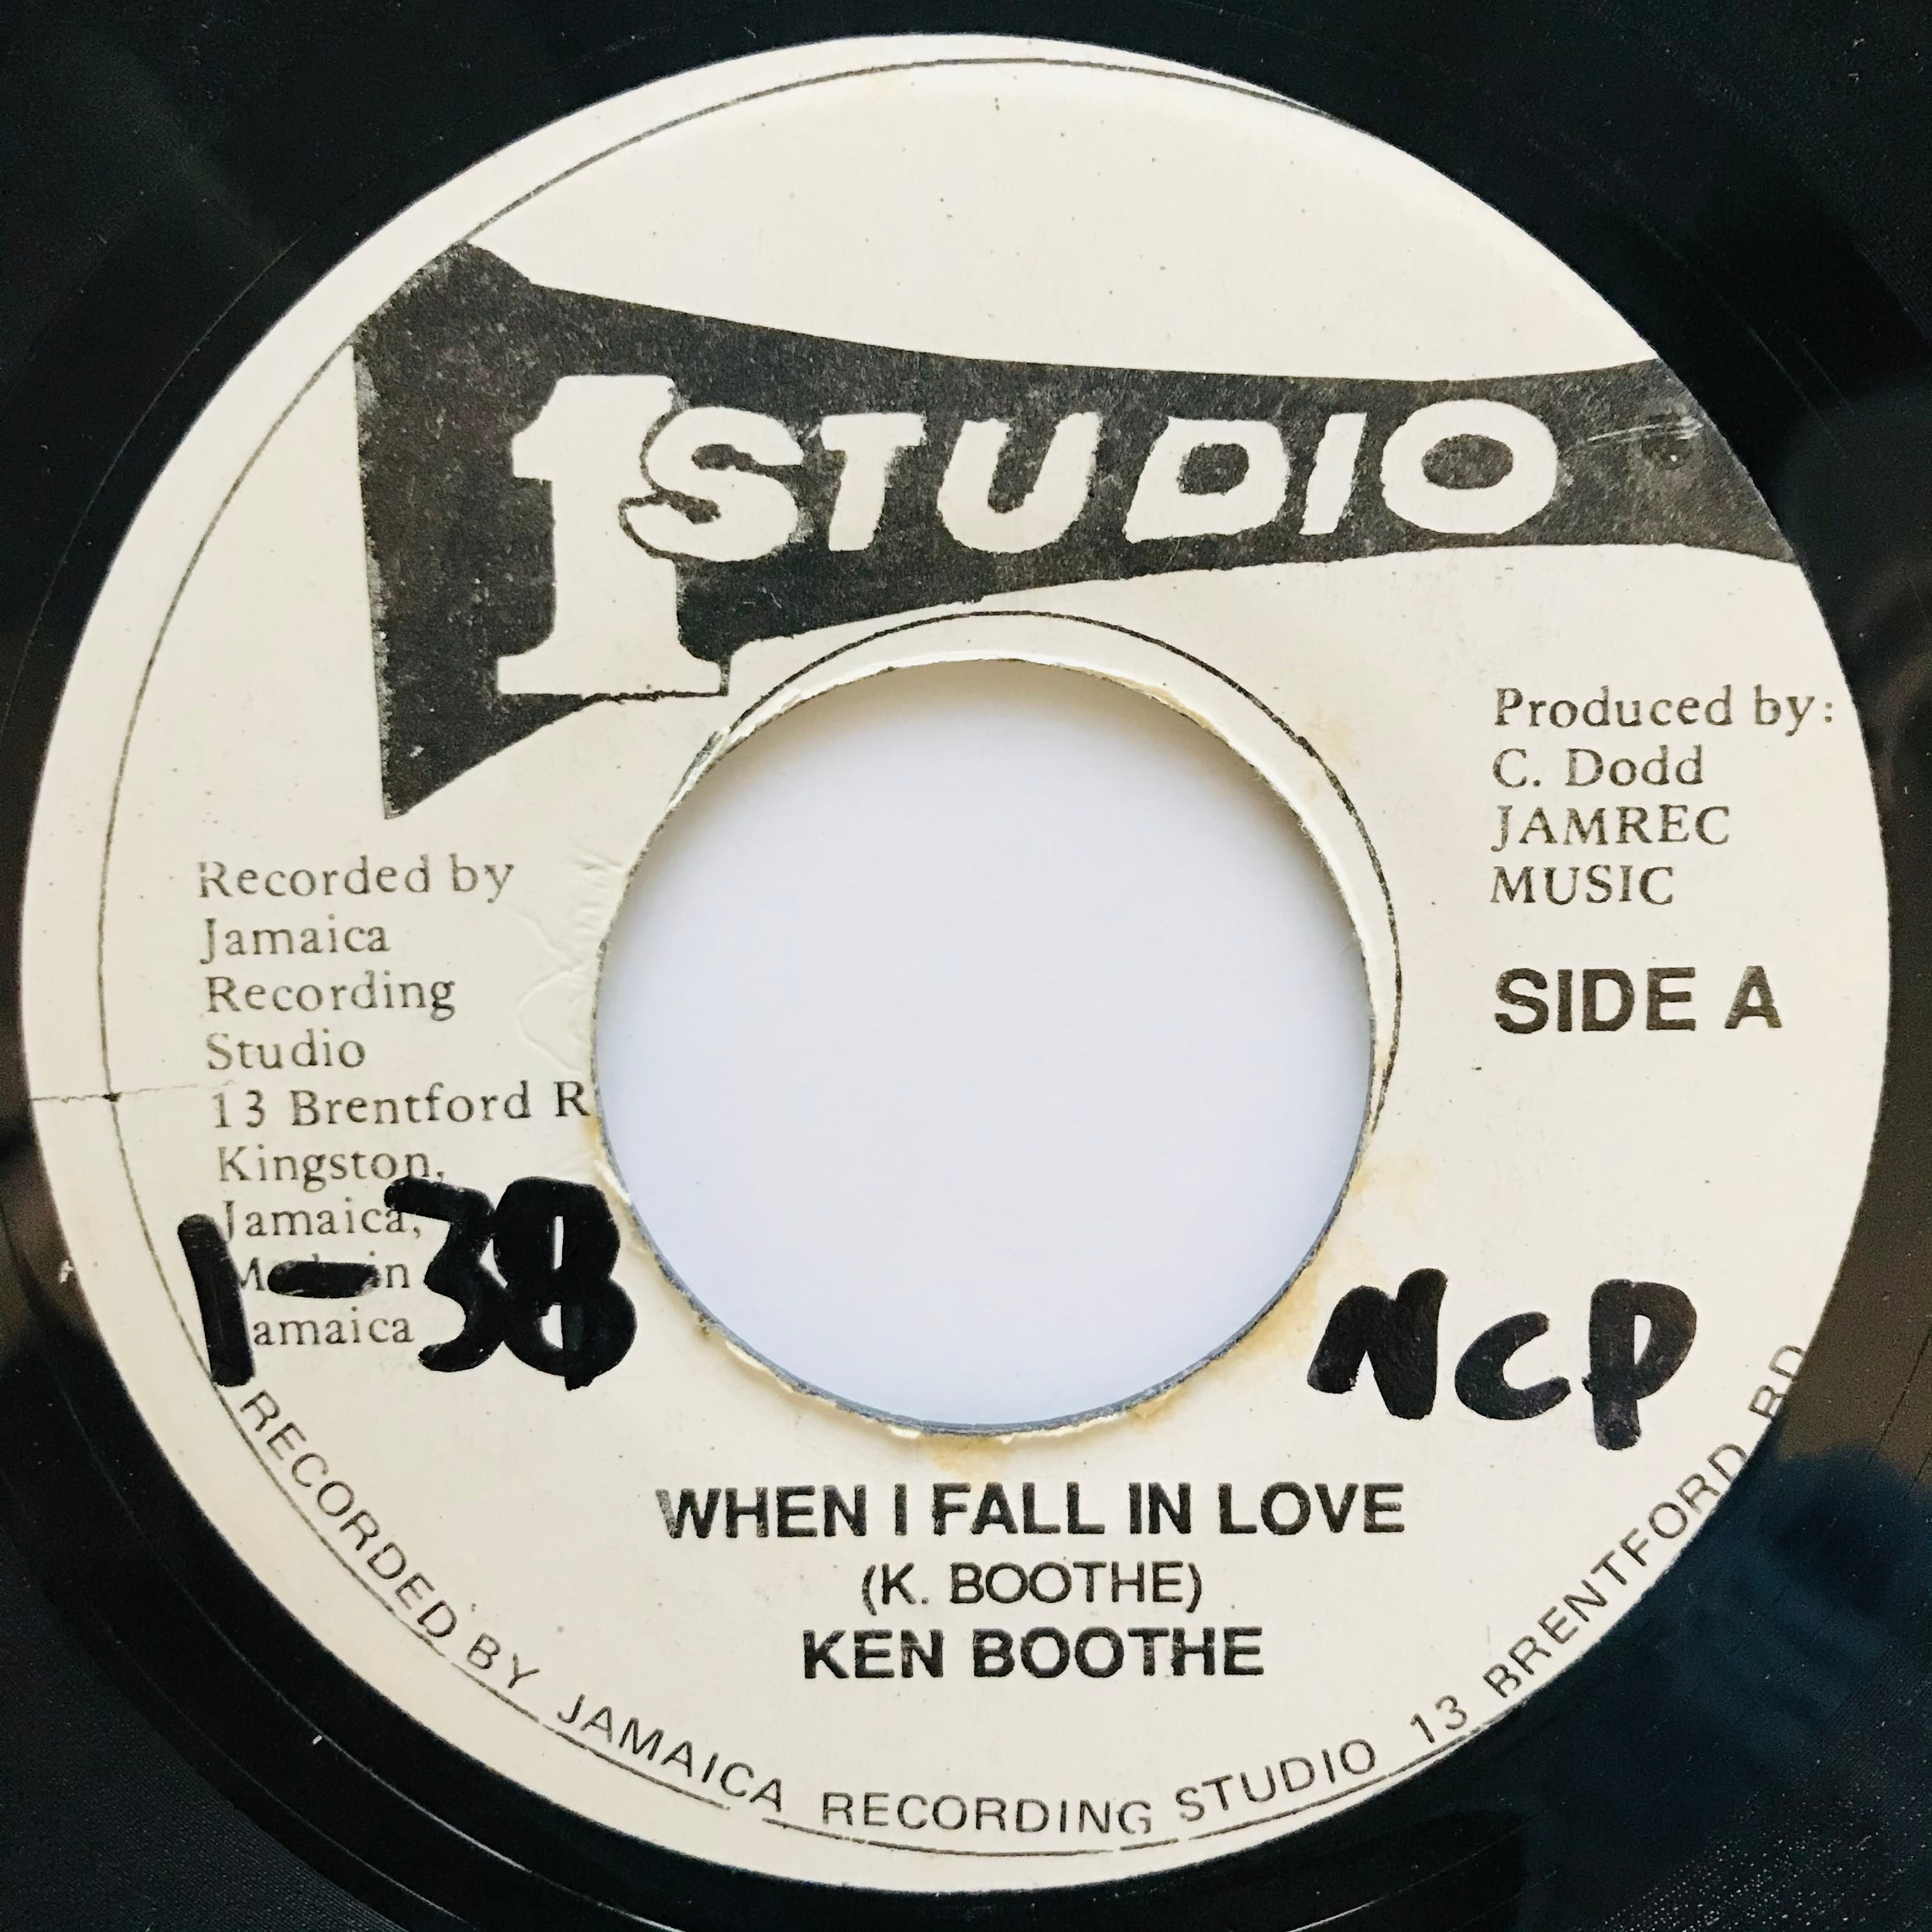 Ken Boothe - When I Fall In Love【7-11033】